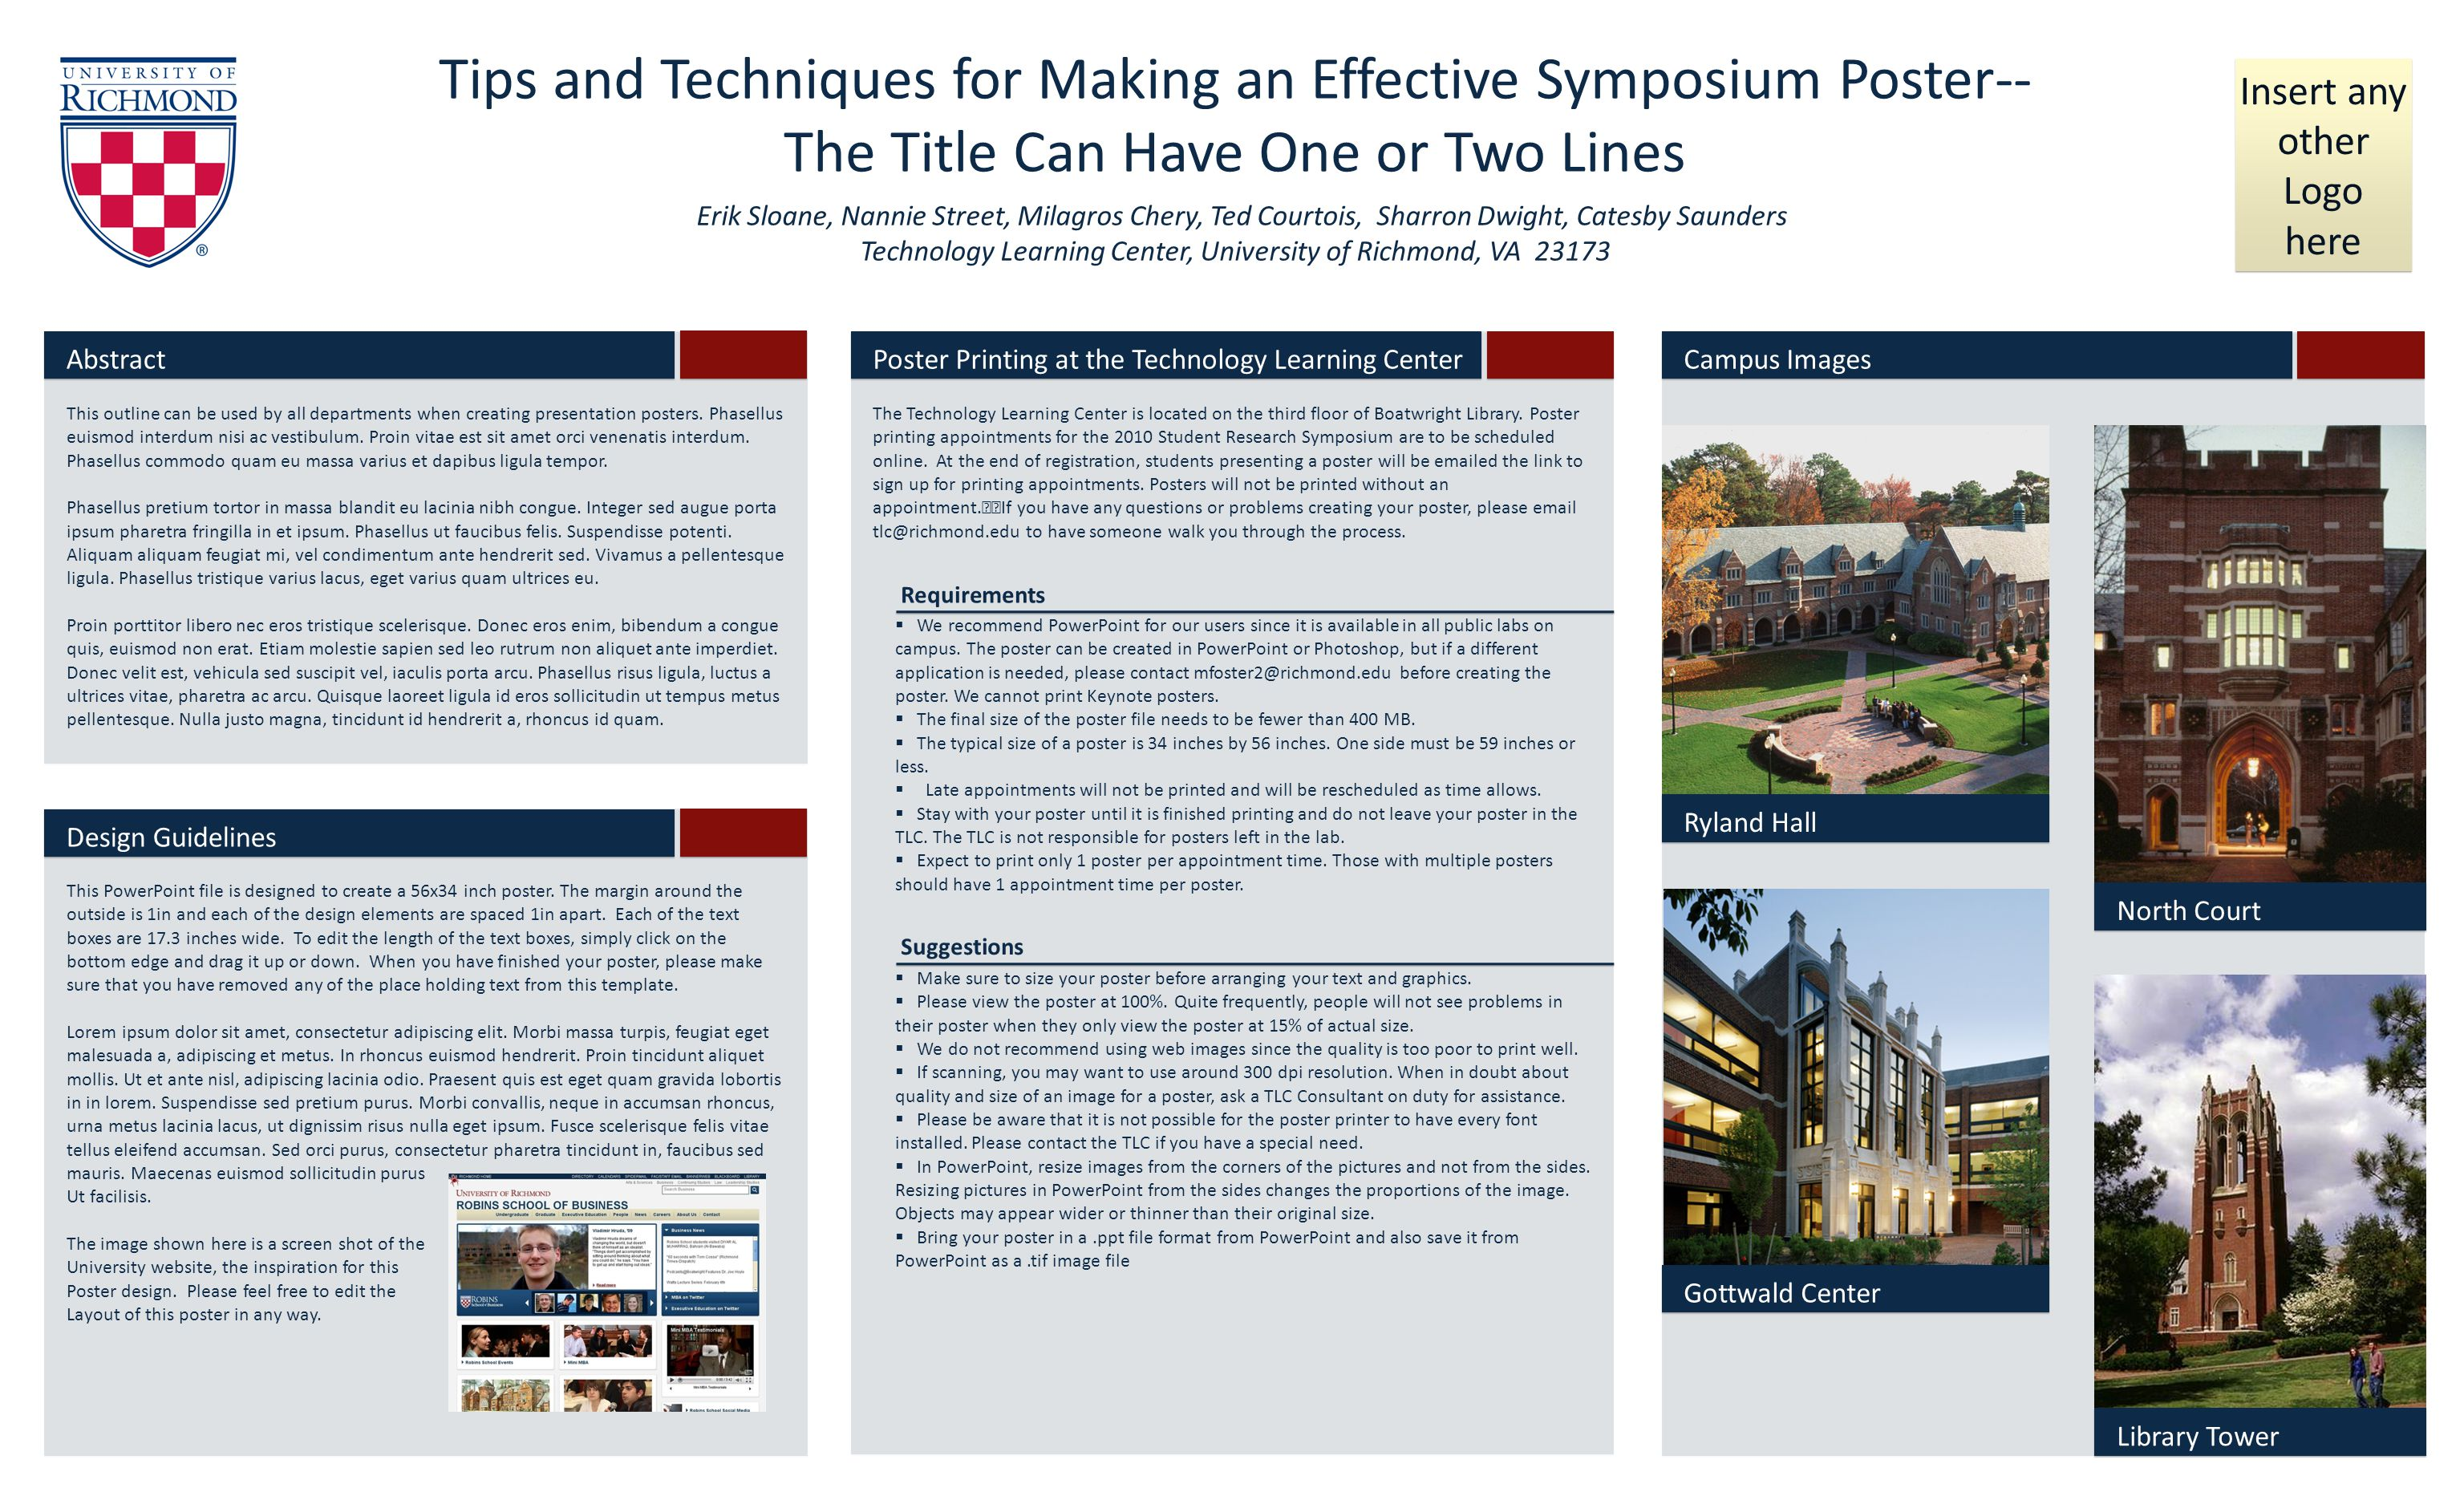 Tips and Techniques for Making an Effective Symposium Poster-- The Title Can Have One or Two Lines Insert any other Logo here Erik Sloane, Nannie Street, Milagros Chery, Ted Courtois, Sharron Dwight, Catesby Saunders Technology Learning Center, University of Richmond, VA 23173 Abstract Requirements Suggestions Ryland Hall North Court Library Tower Gottwald Center This outline can be used by all departments when creating presentation posters.